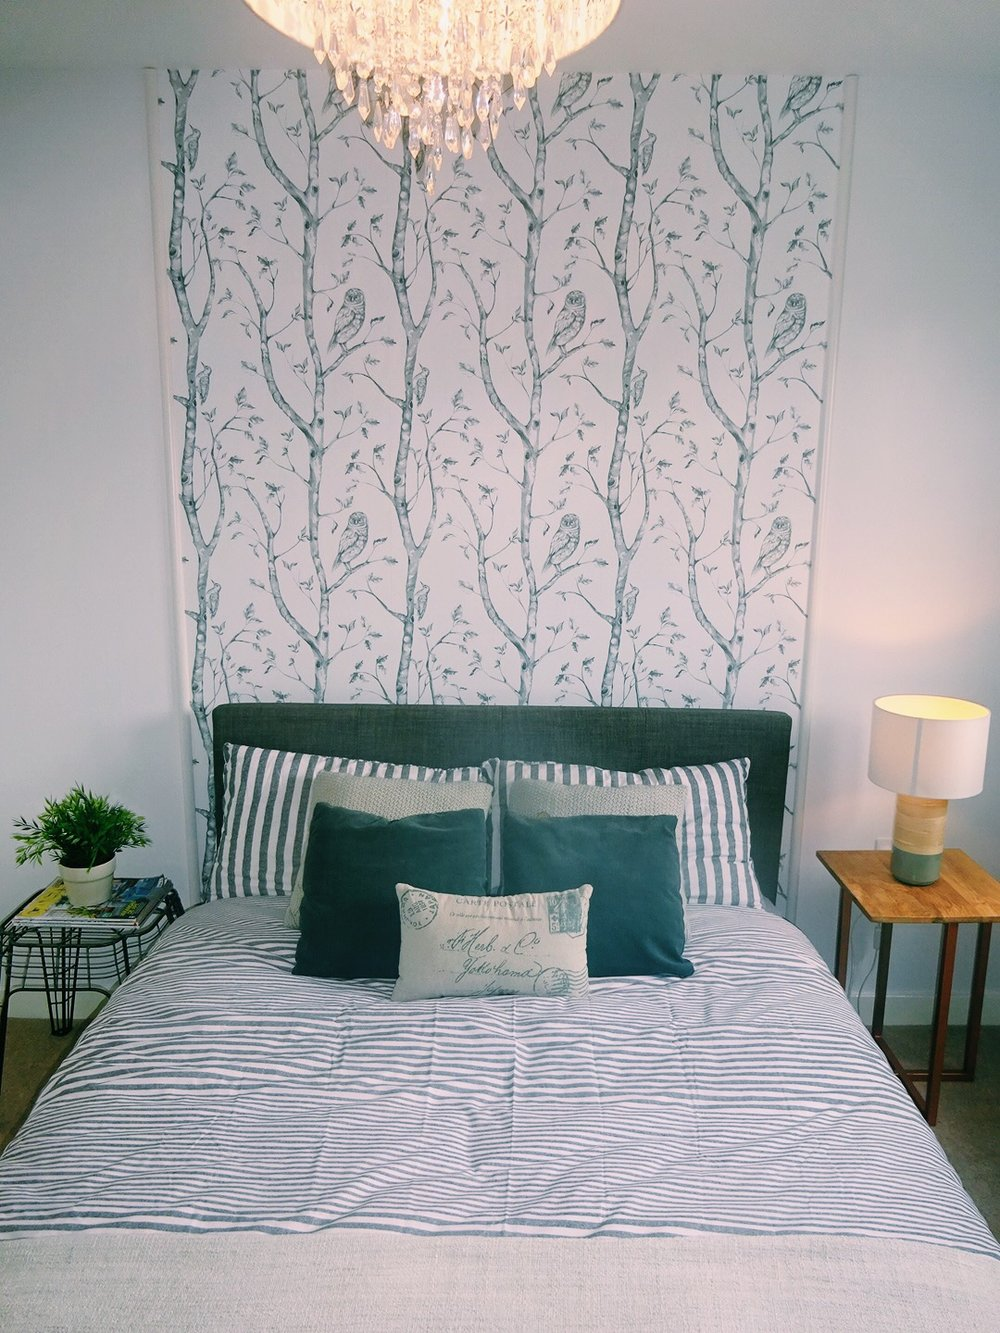 Stick on wallpaper is a great option for tenants